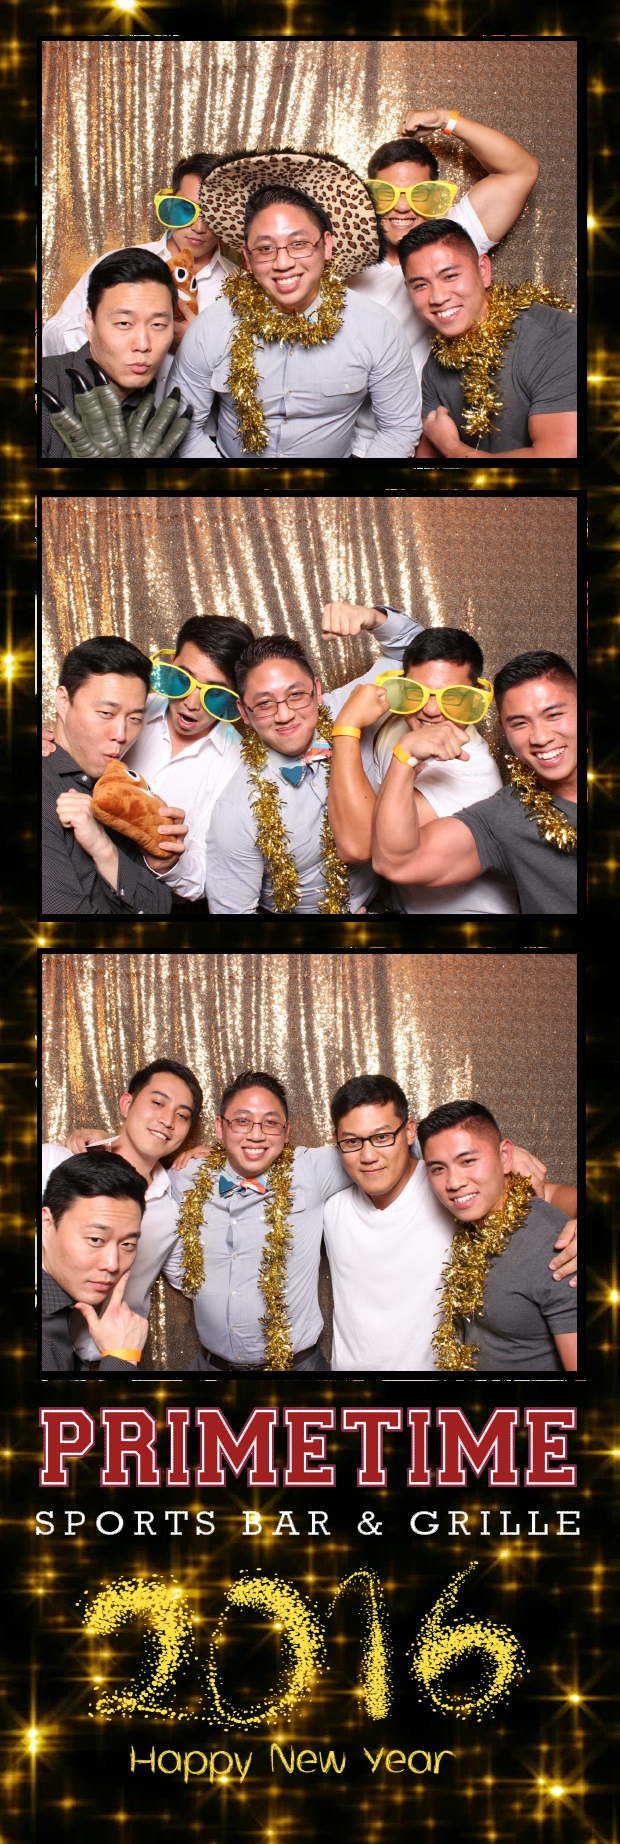 Guest House Events Photo Booth Primetime NYE (29).jpg